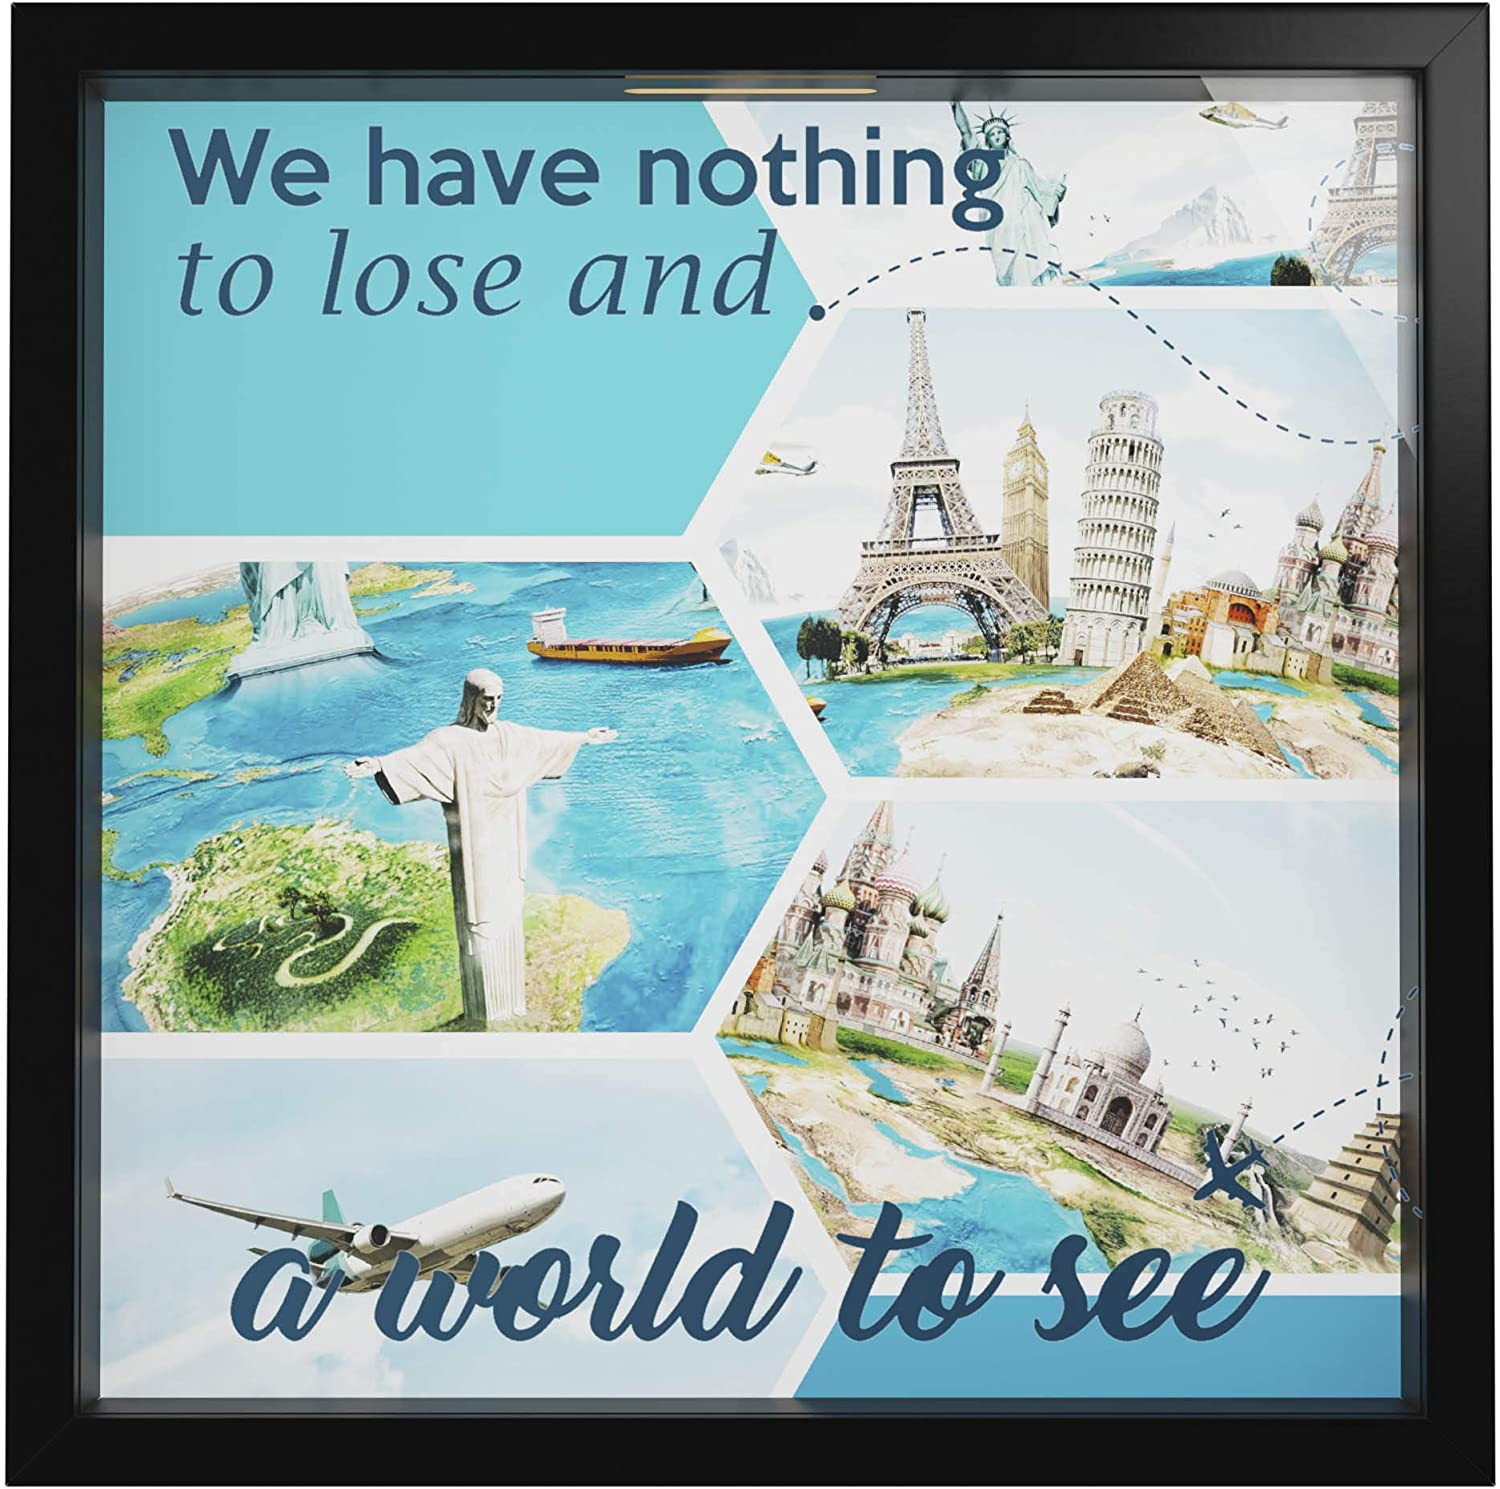 Travel Gifts | Travel Wall Art Decor|Travel Gifts Men and Women |World Travel Picture Frame for Home Decor | Trip Lovers Gifts | Adventure Wooden Photo Storage Box | Explorer Presents